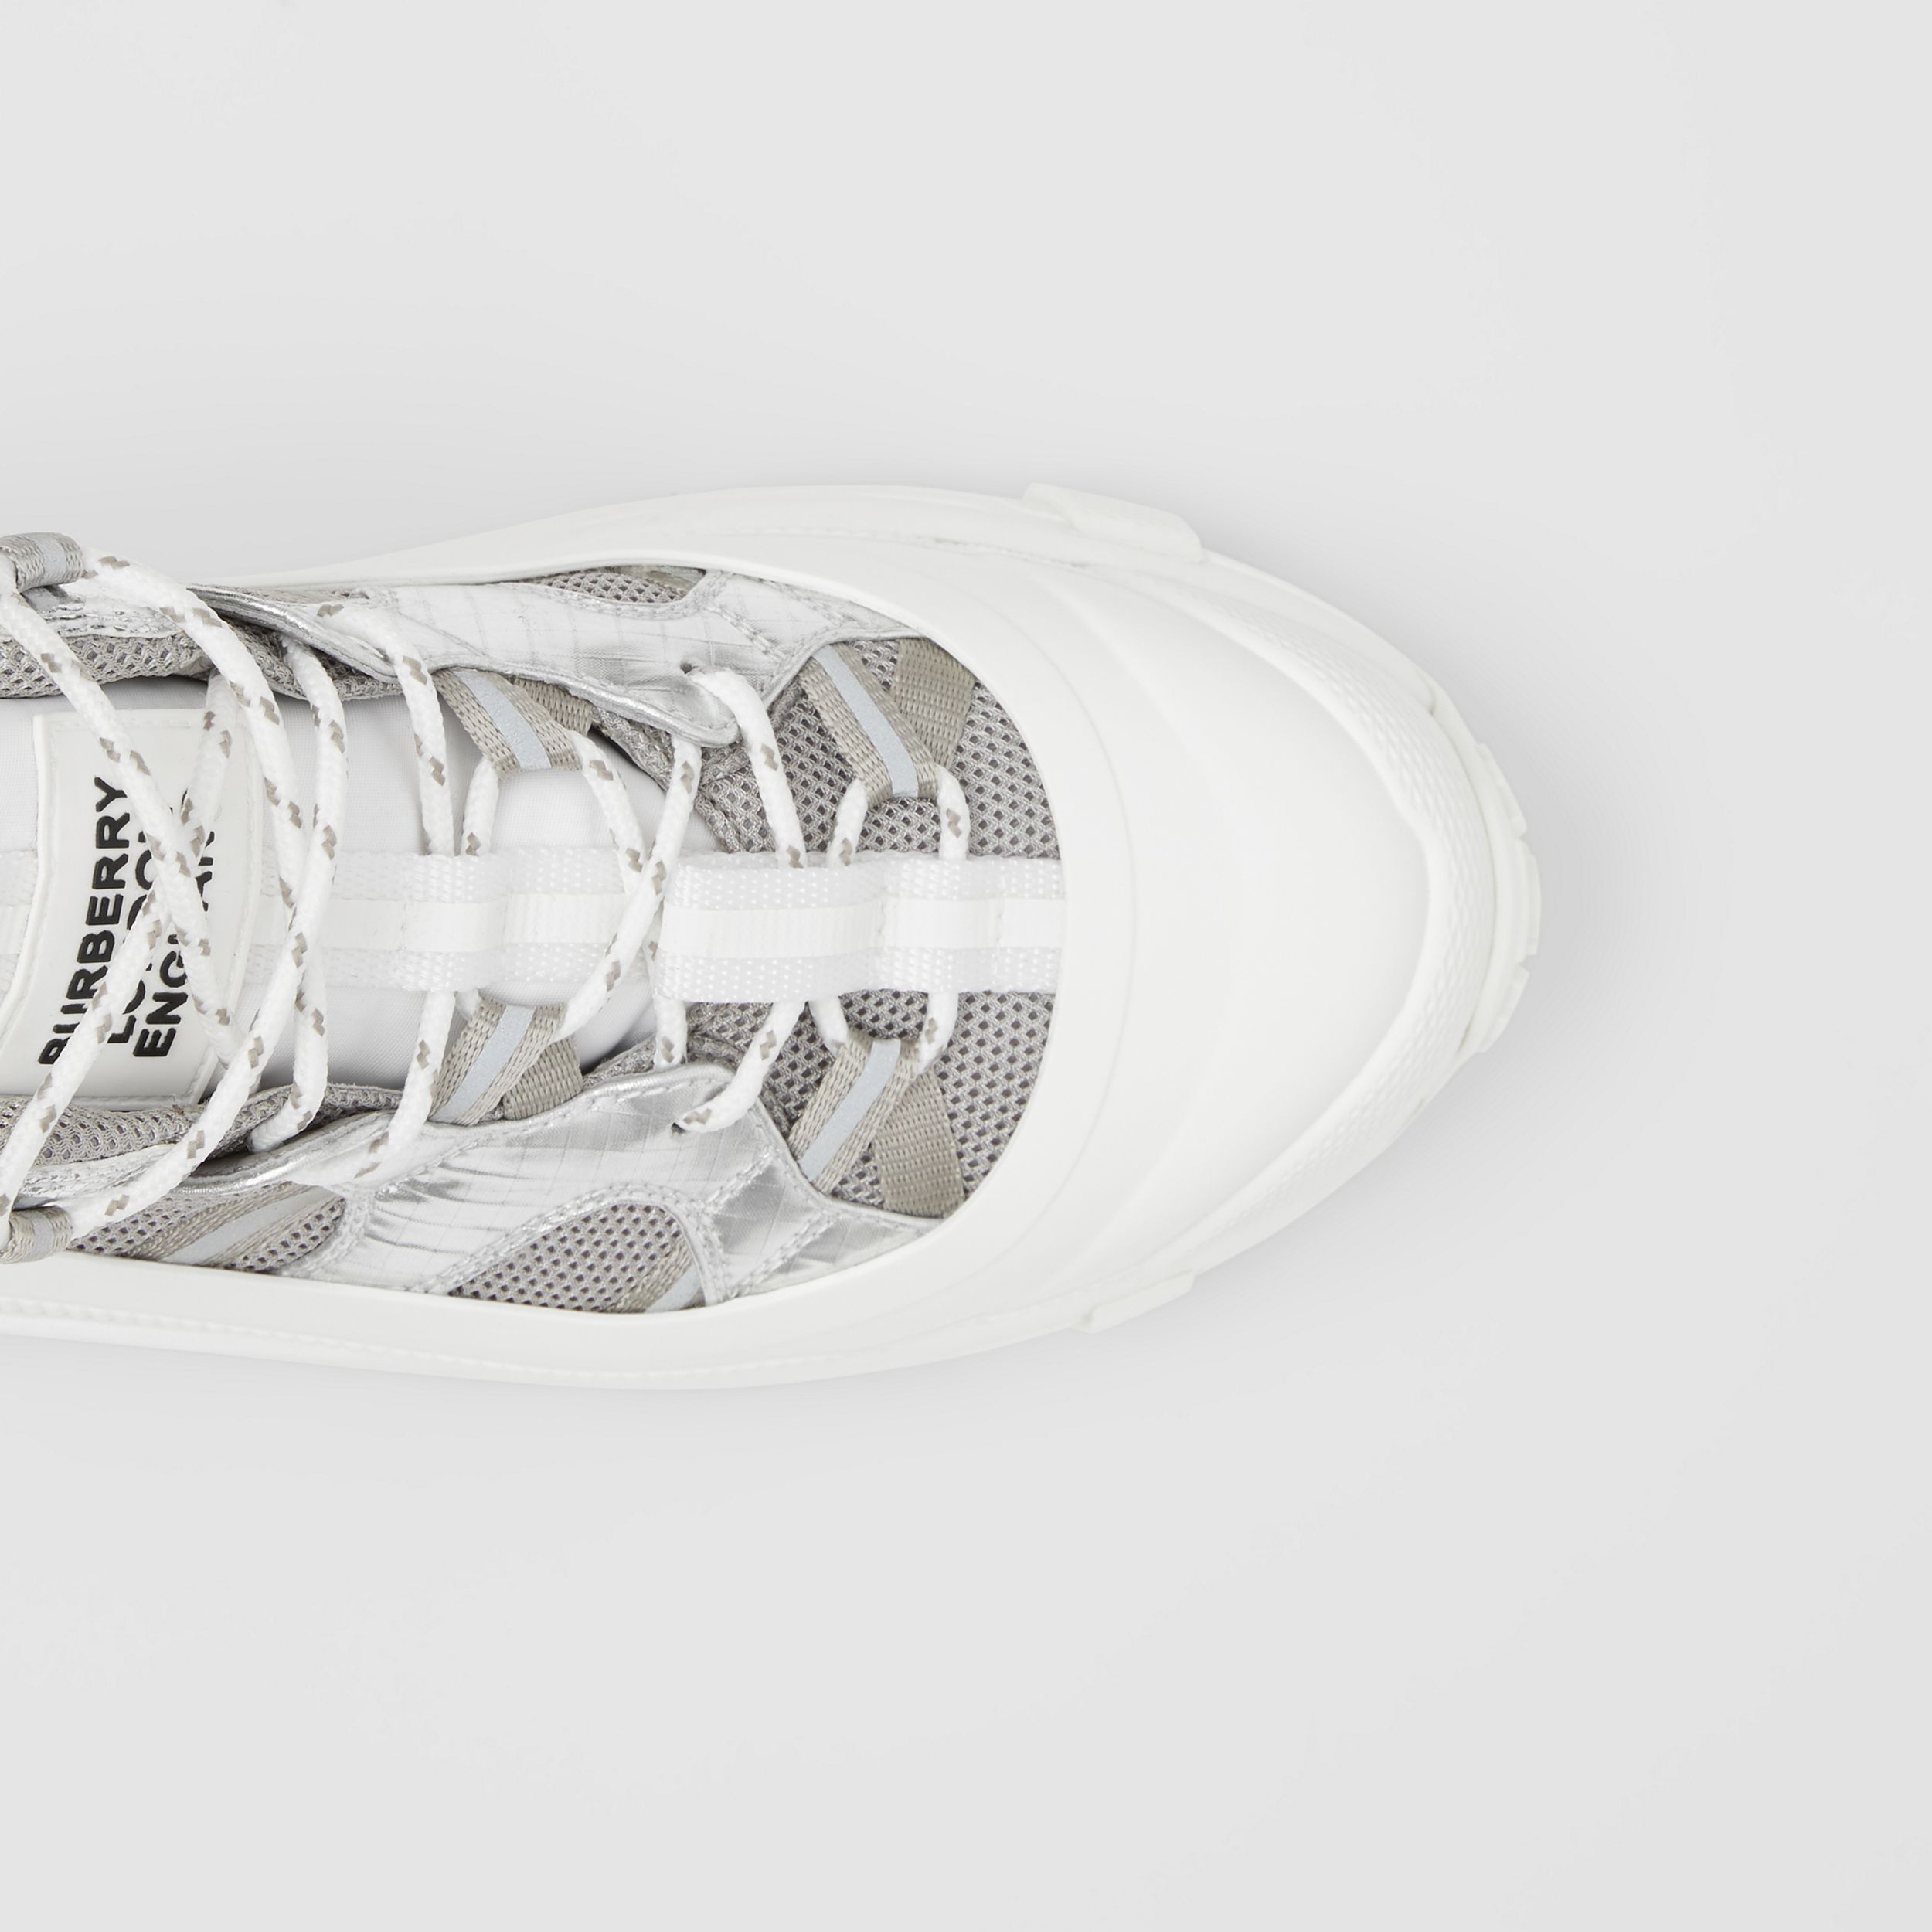 Metallic Leather, Nylon and Mesh Arthur Sneakers in Silver - Women | Burberry Canada - 2